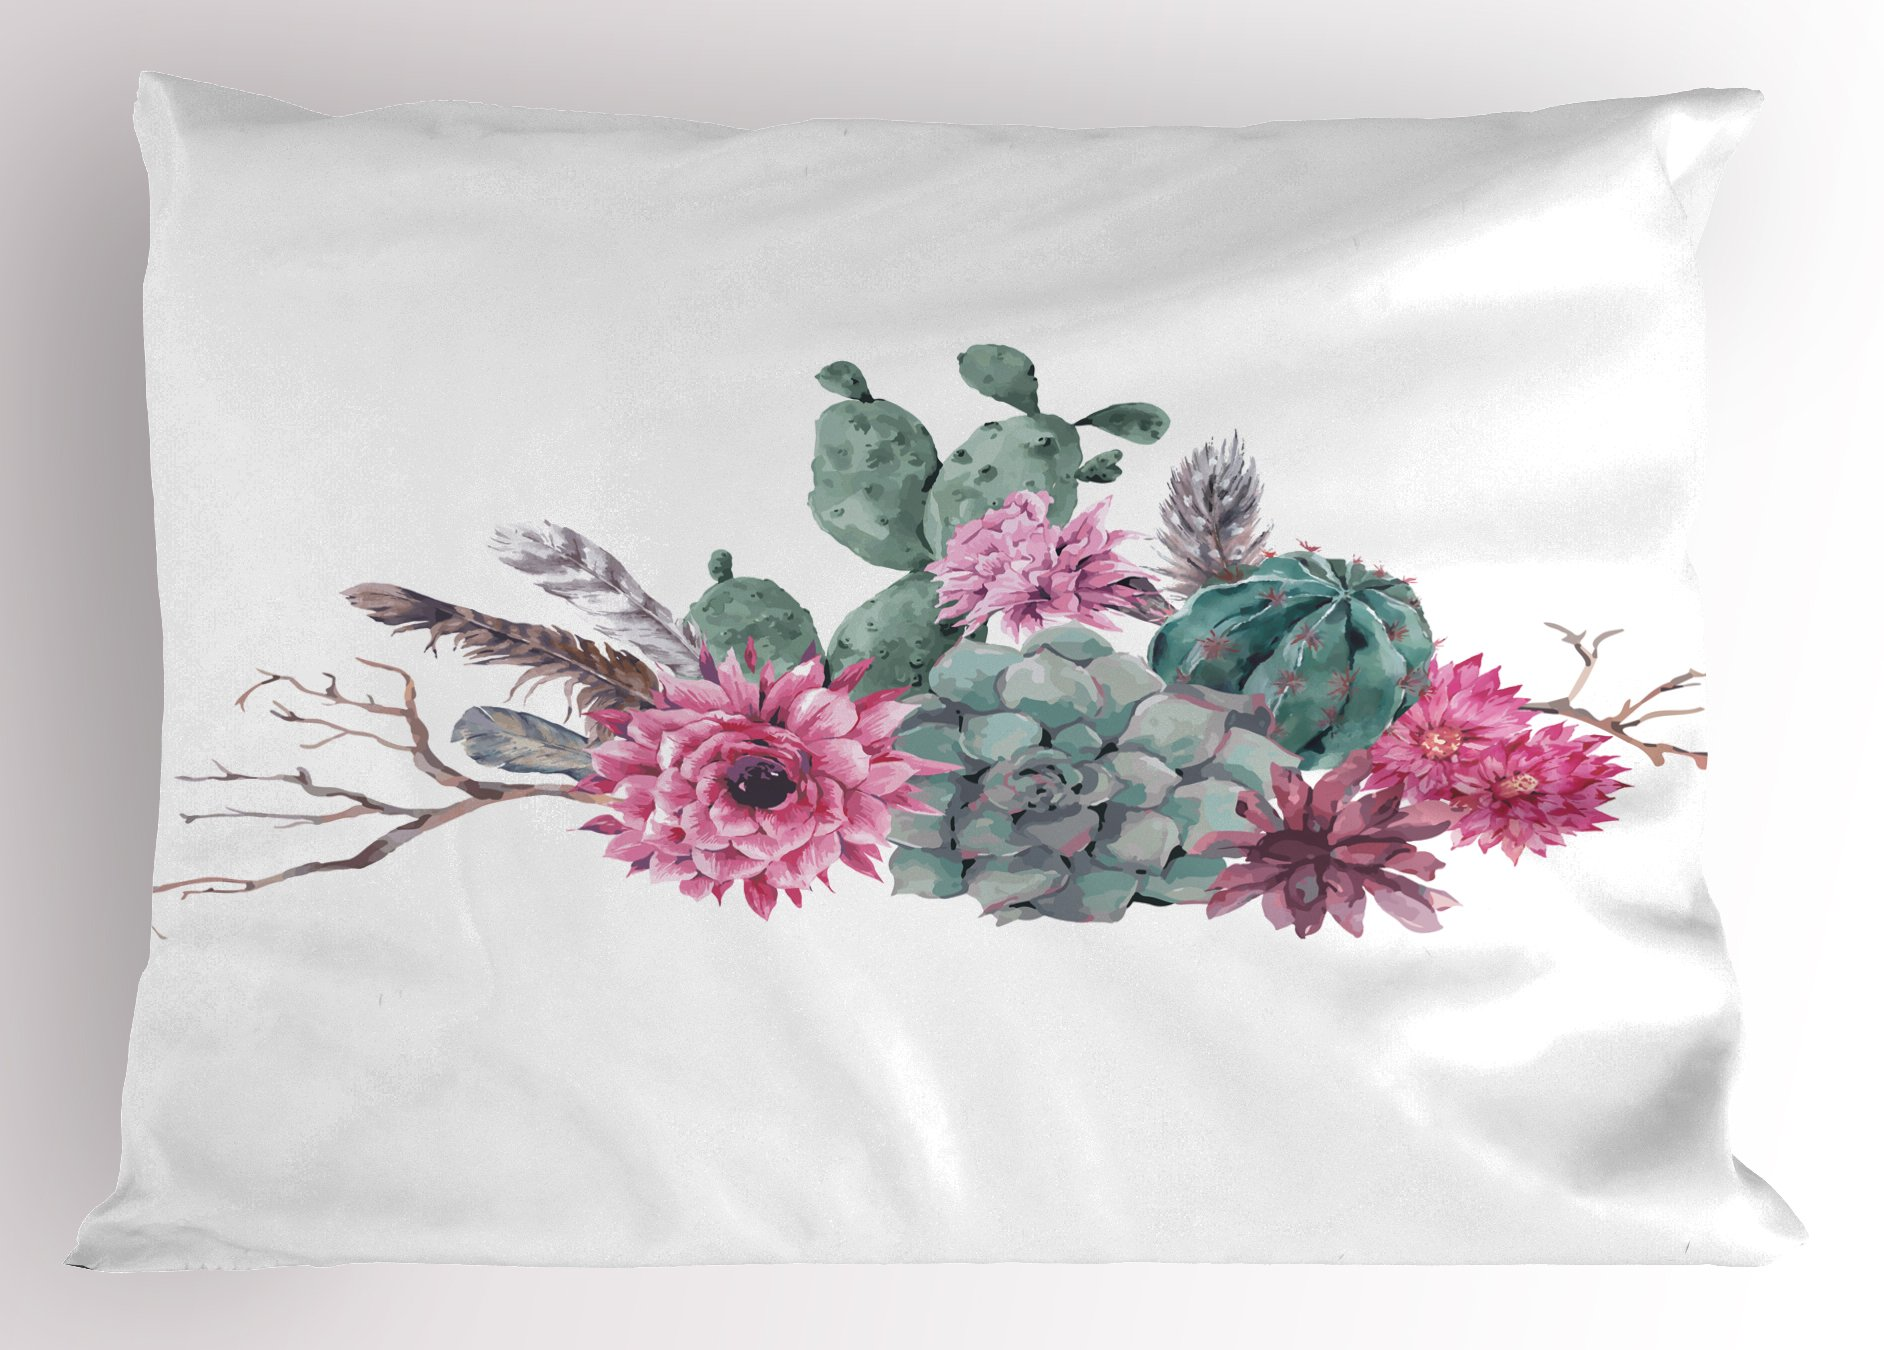 Ambesonne Succulent Pillow Sham by, Feathers Flowers Cacti Ethnic Hipster Elements Vintage Fashion, Decorative Standard King Size Printed Pillowcase, 36 X 20 Inches, Sage Green Light Pink Mauve